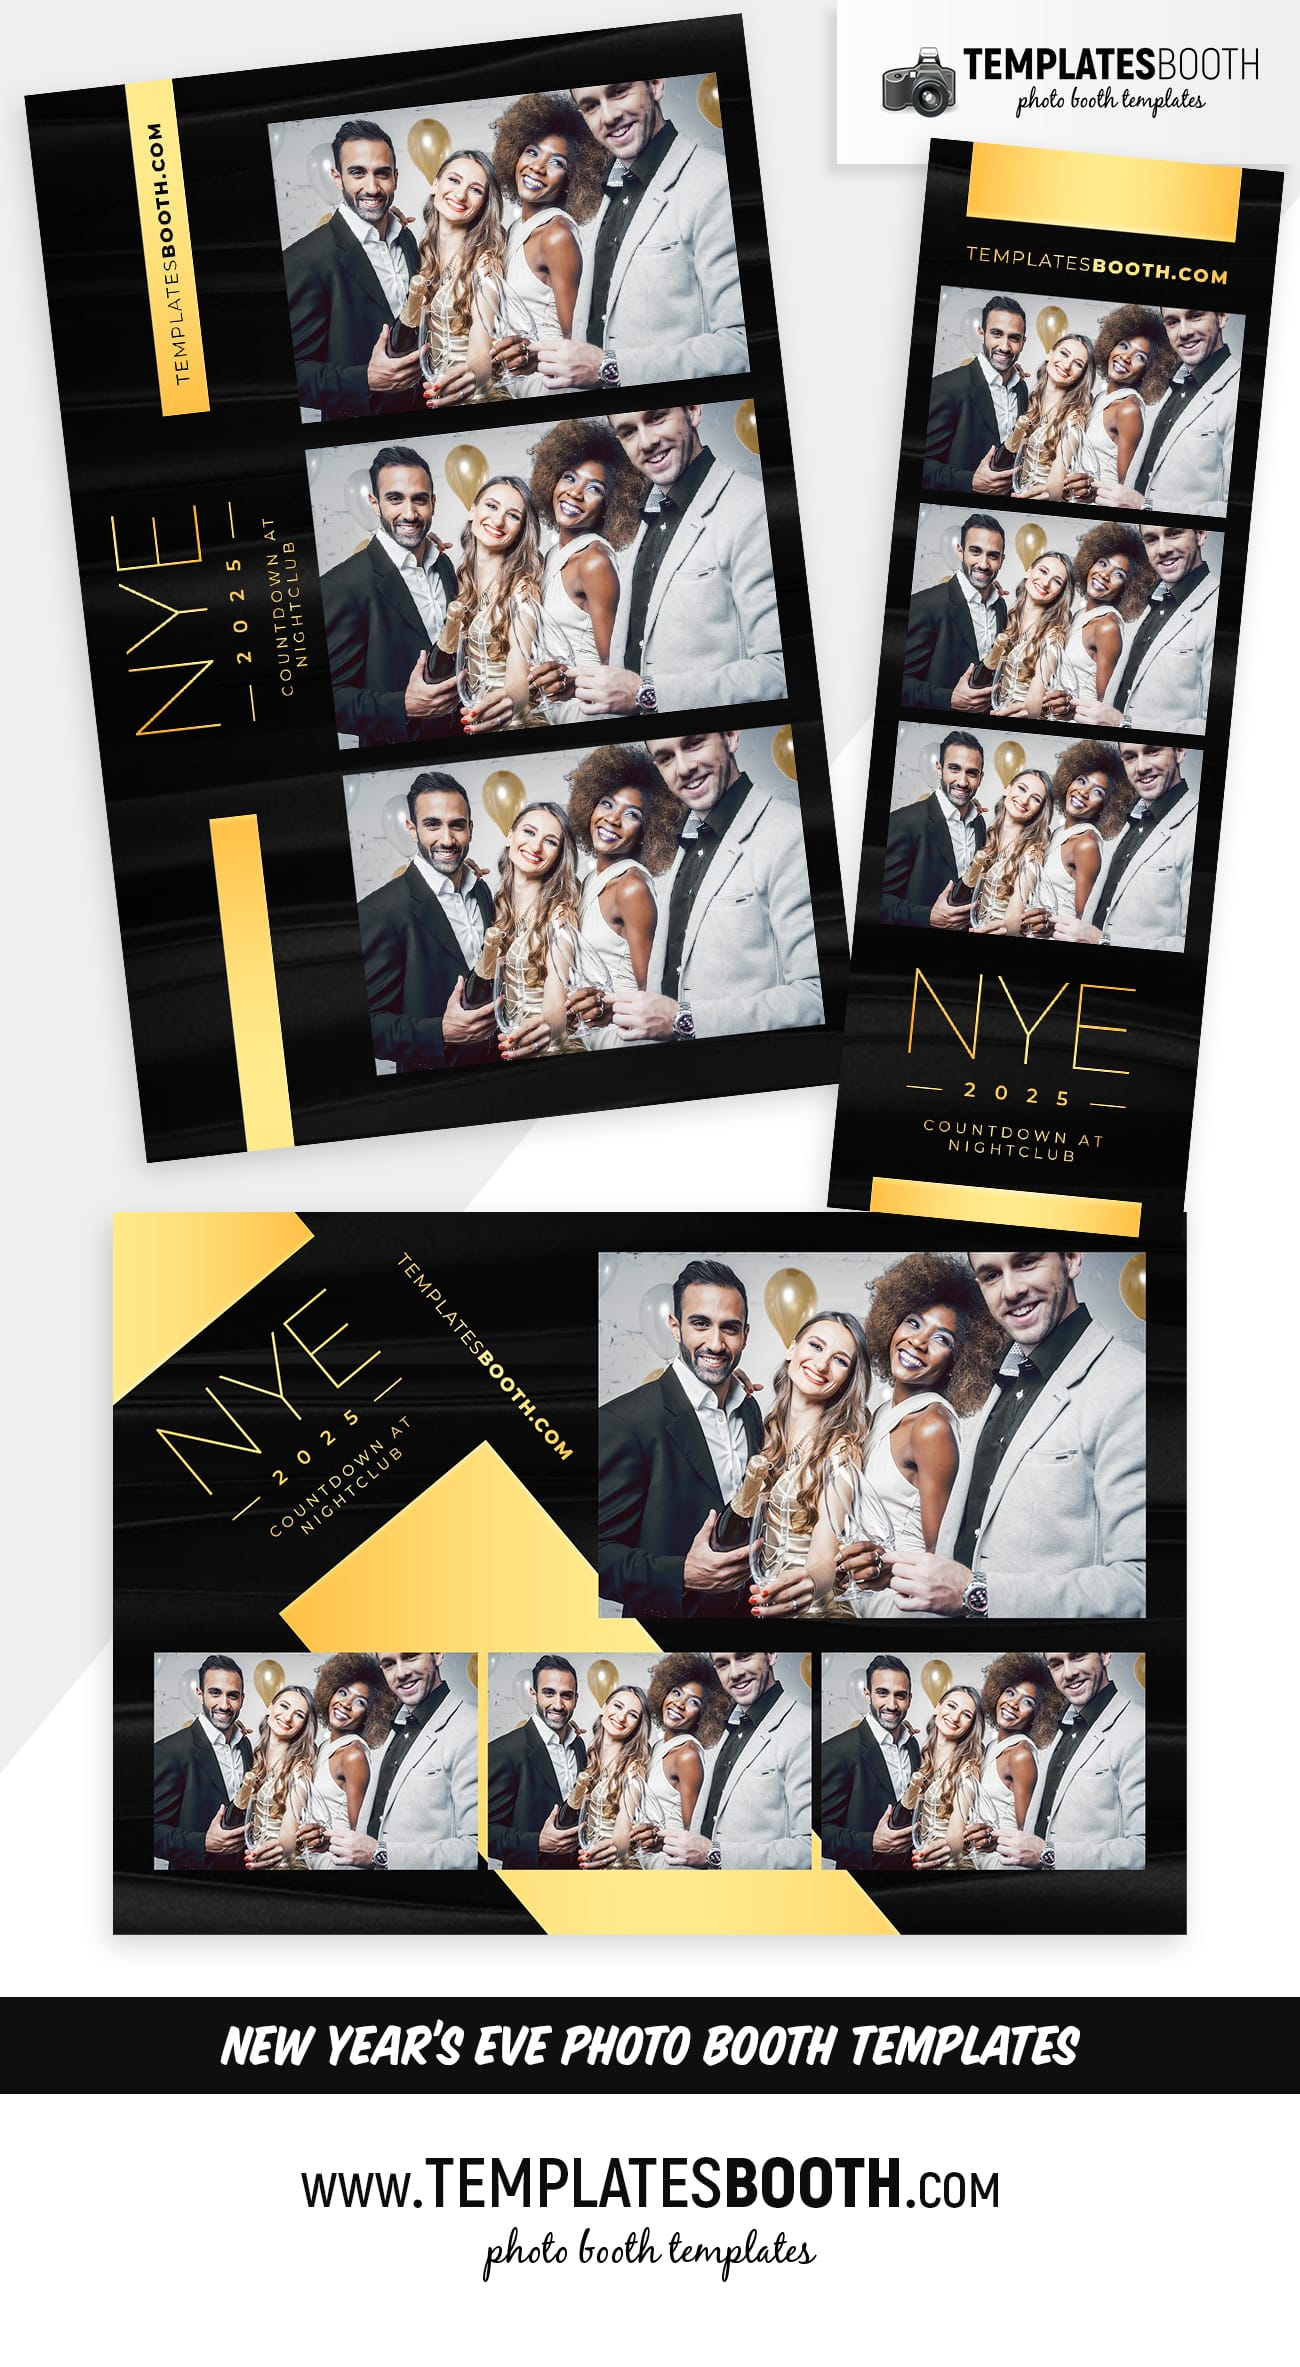 New Year's Eve Photo Booth Templates (full preview)